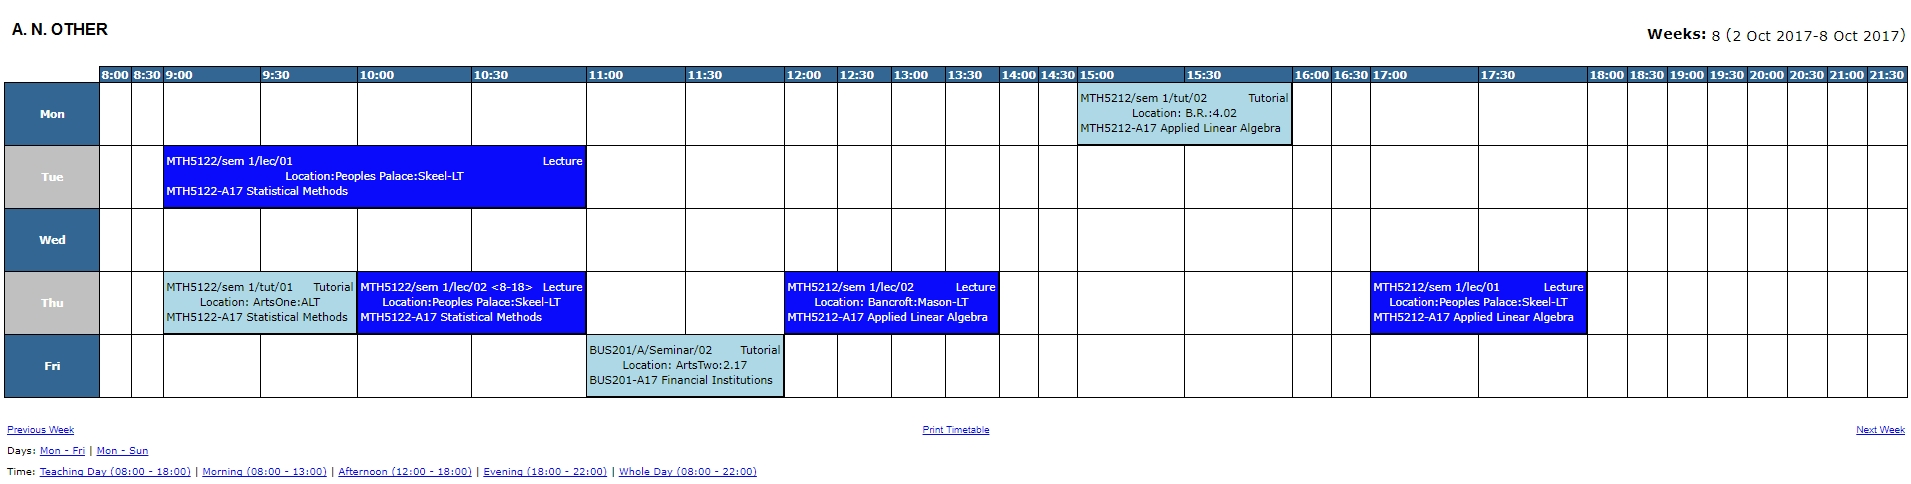 Accessing Your Personal Timetable | E-Learning Unit